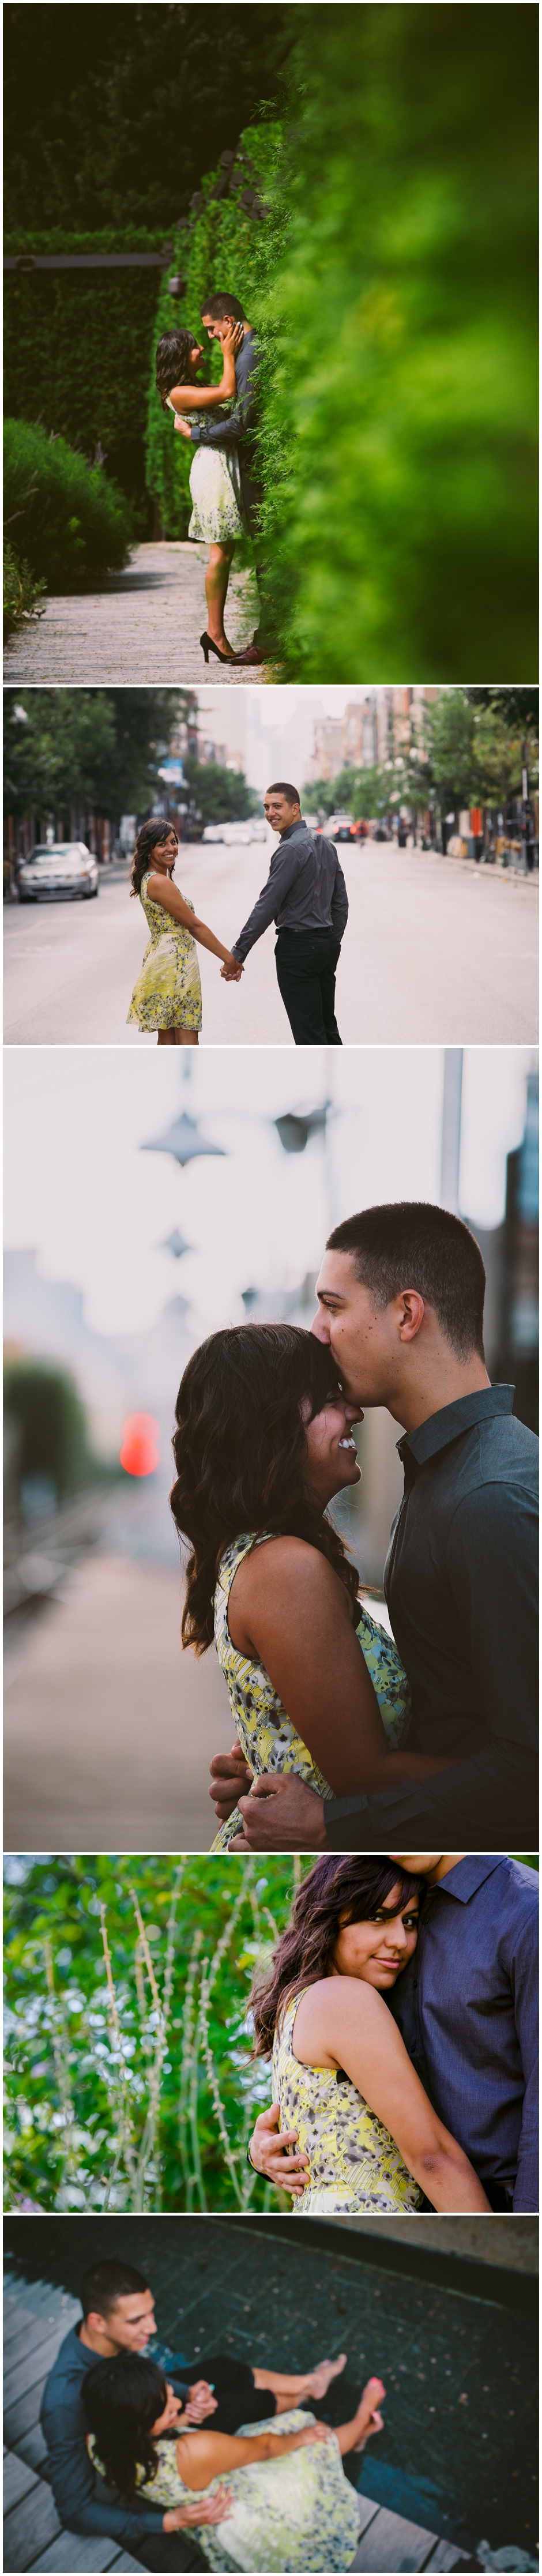 Chicago Engagement Photography: Laurie & Mike